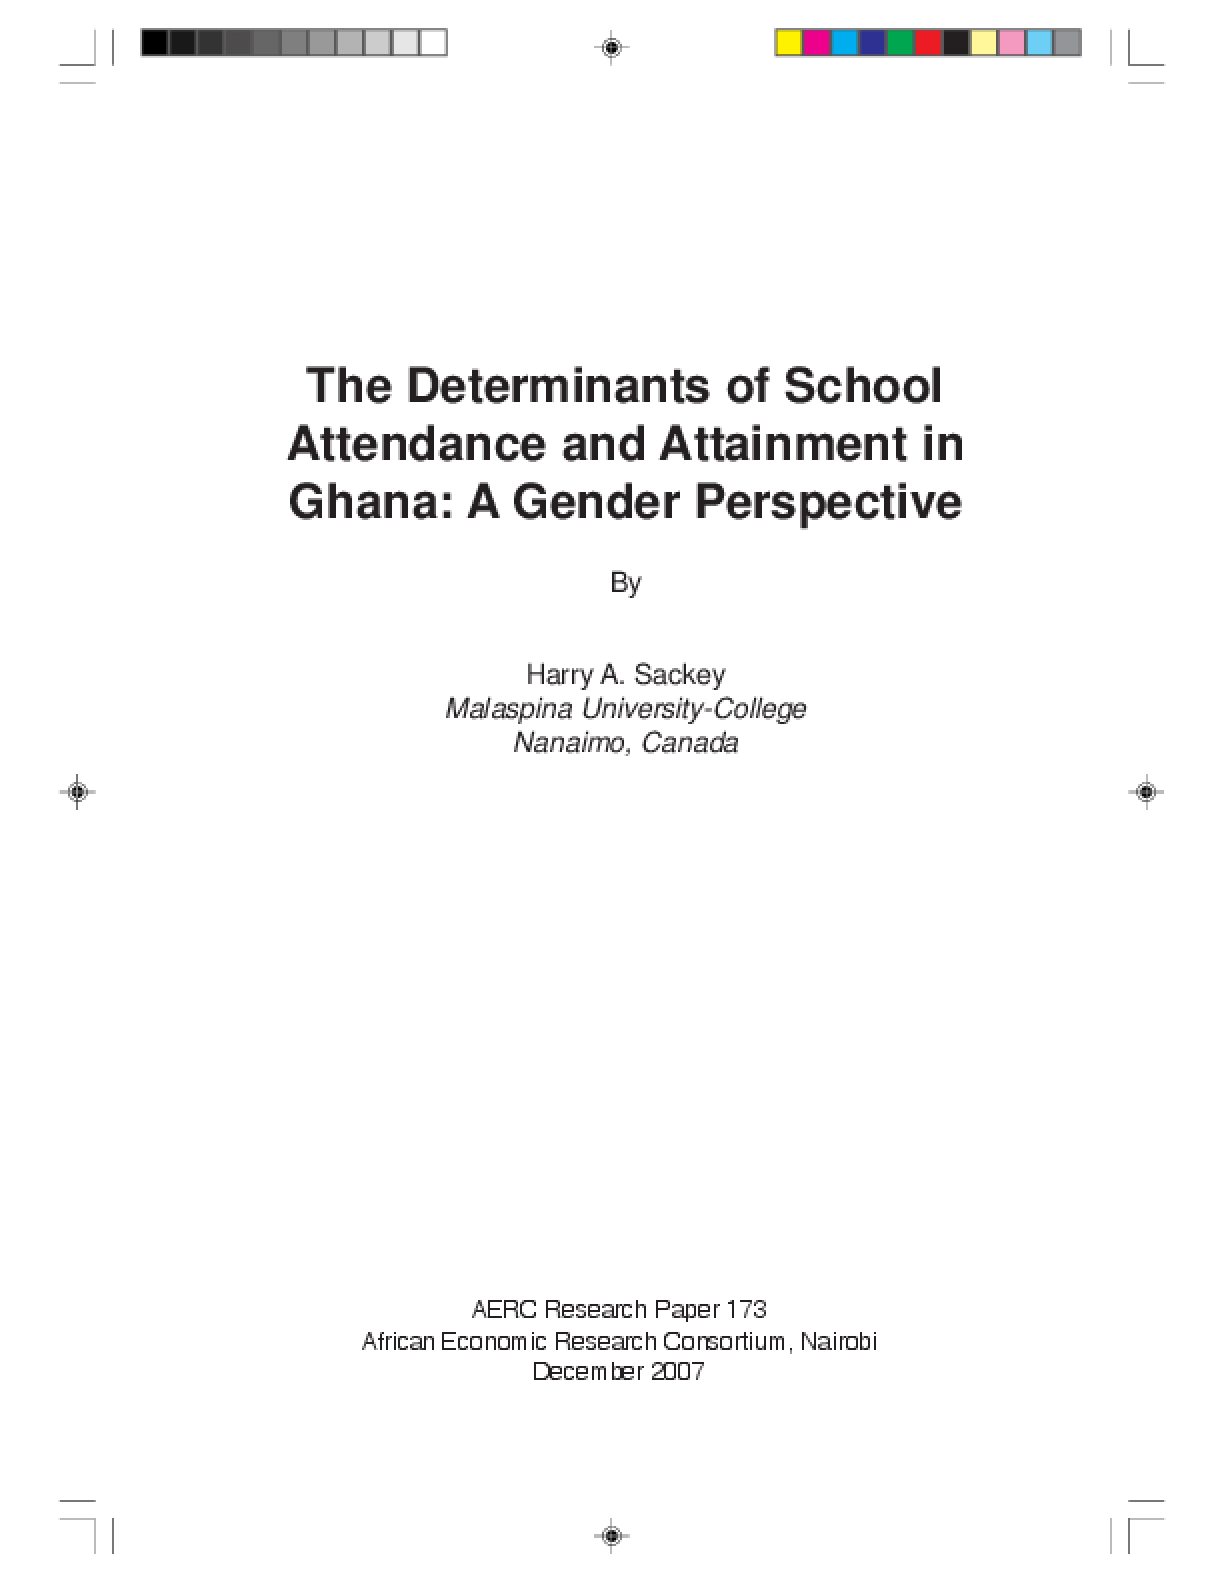 The Determinants of School Attendance and Attainment in Ghana: A Gender Perspective